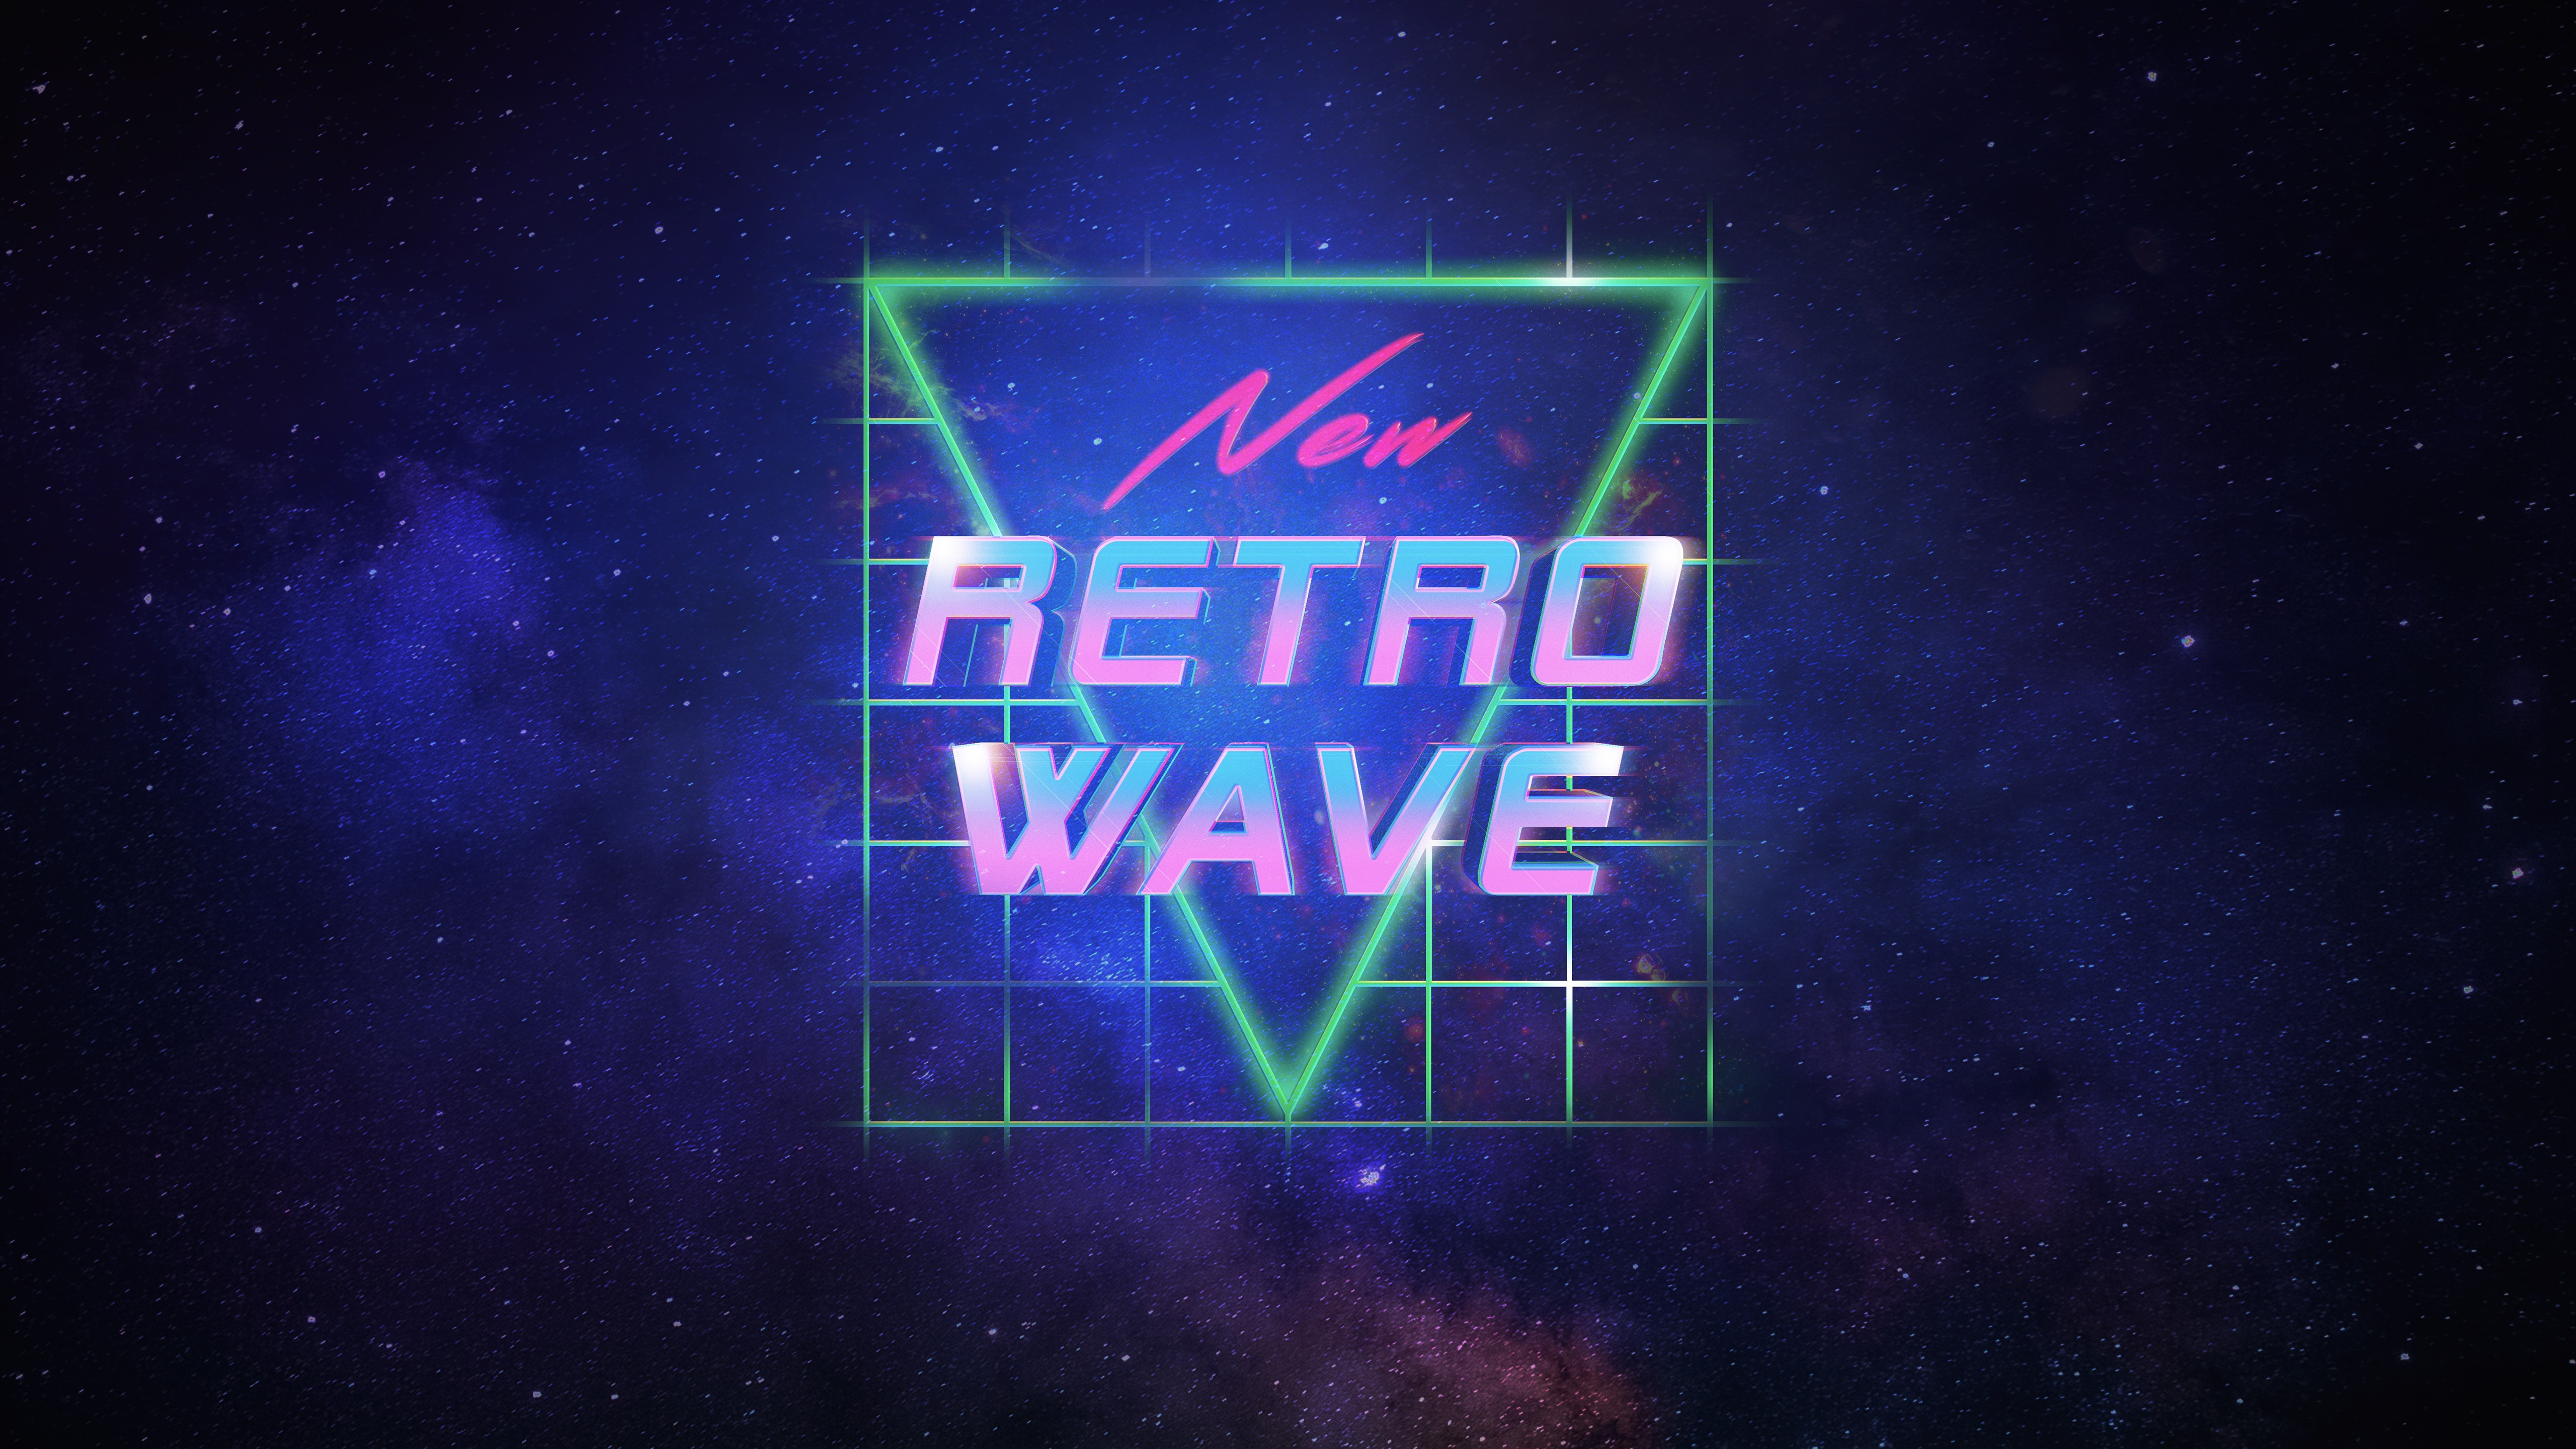 New Retro Wave Synth Pop 1242x2688 Iphone 11 Pro Xs Max Wallpaper Background Picture Image